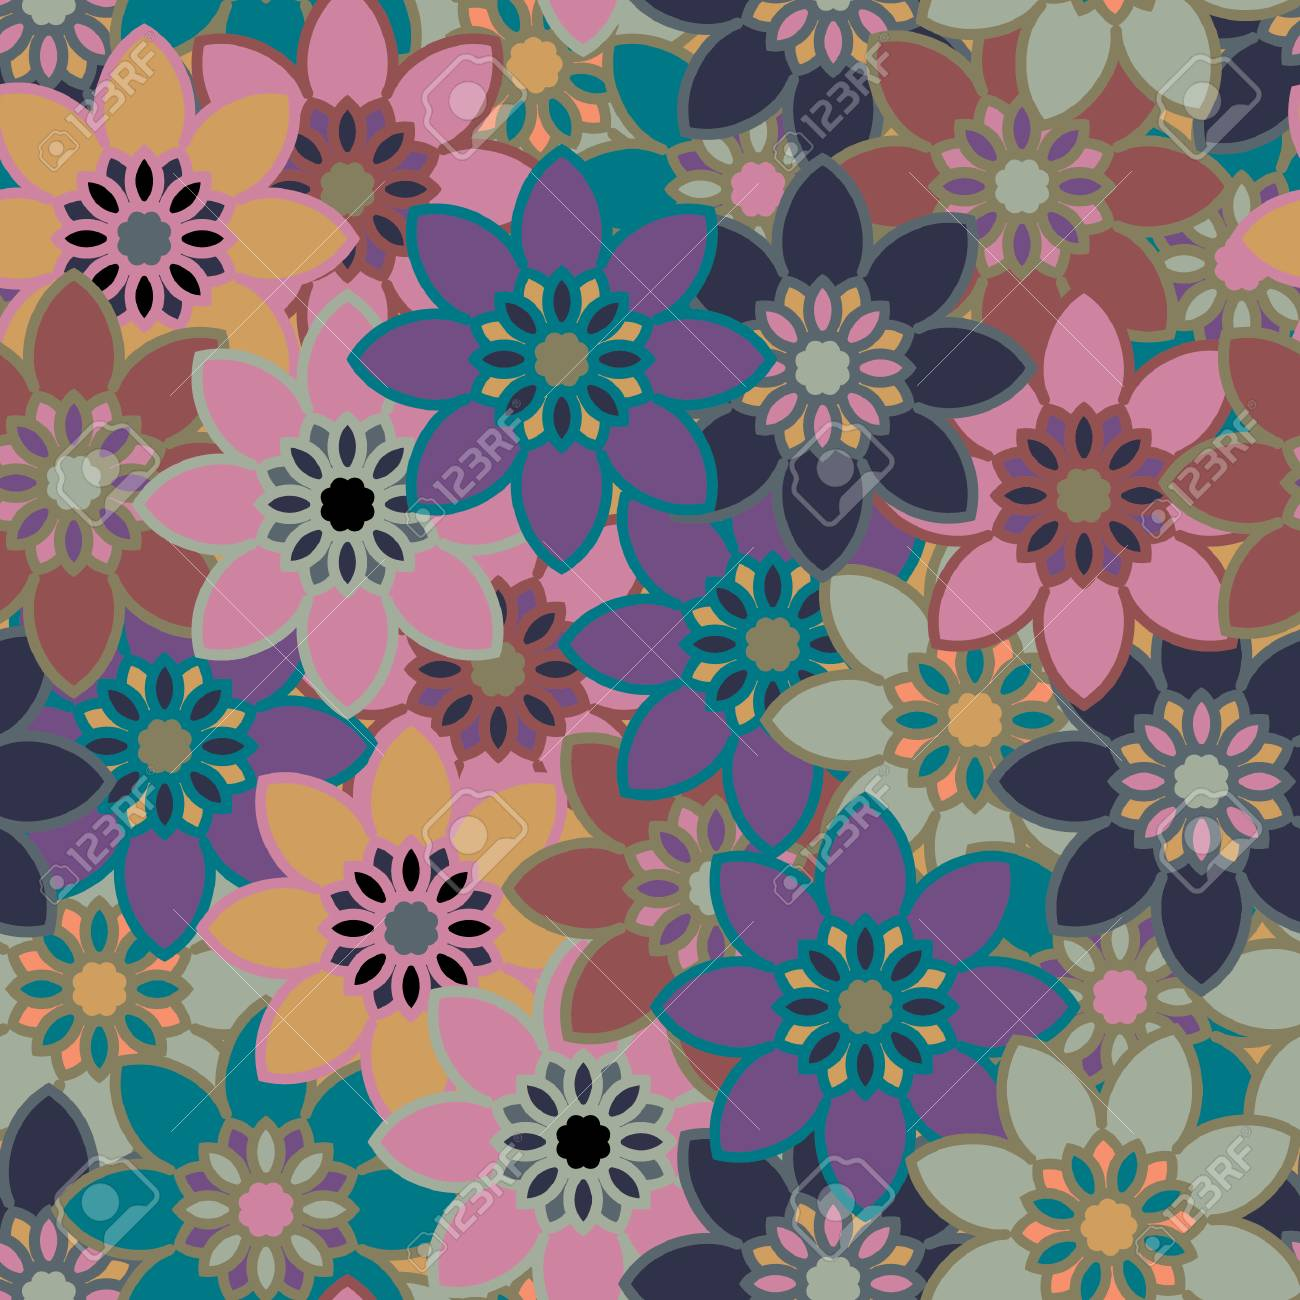 Seamless Floral Pattern Classic Wallpaper Seamless Vintage Flower